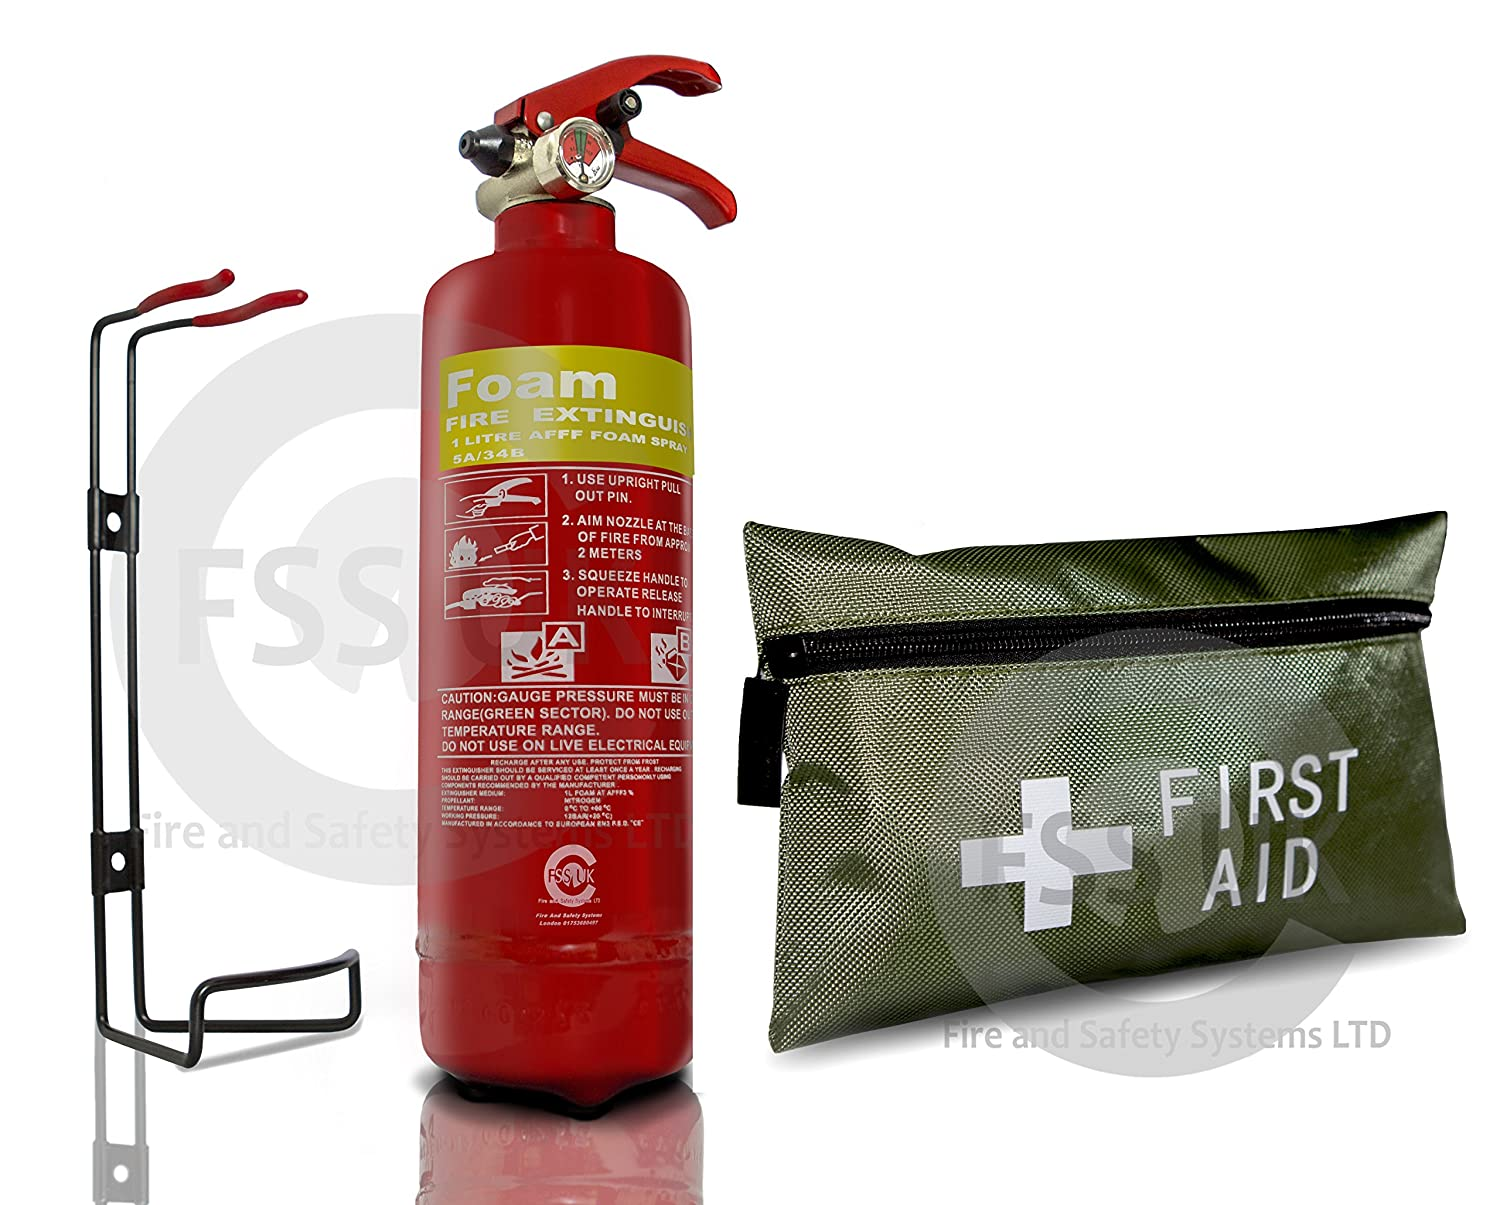 (Commisioned with service certificate )FSS UK PLUS CAR / VEHICLE FIRE SAFETY PACK. 1 LITRE AFF FOAM FIRE EXTINGUISHER CE MARKED WITH 5 YEAR WARRANTY & 42 PIECES 1ST AID KIT IDEAL FOR CARS, MINI BUSES, TAXIS, CARAVANS, SMALL BOATS, SMALL KITCHEN AREAS, DOME